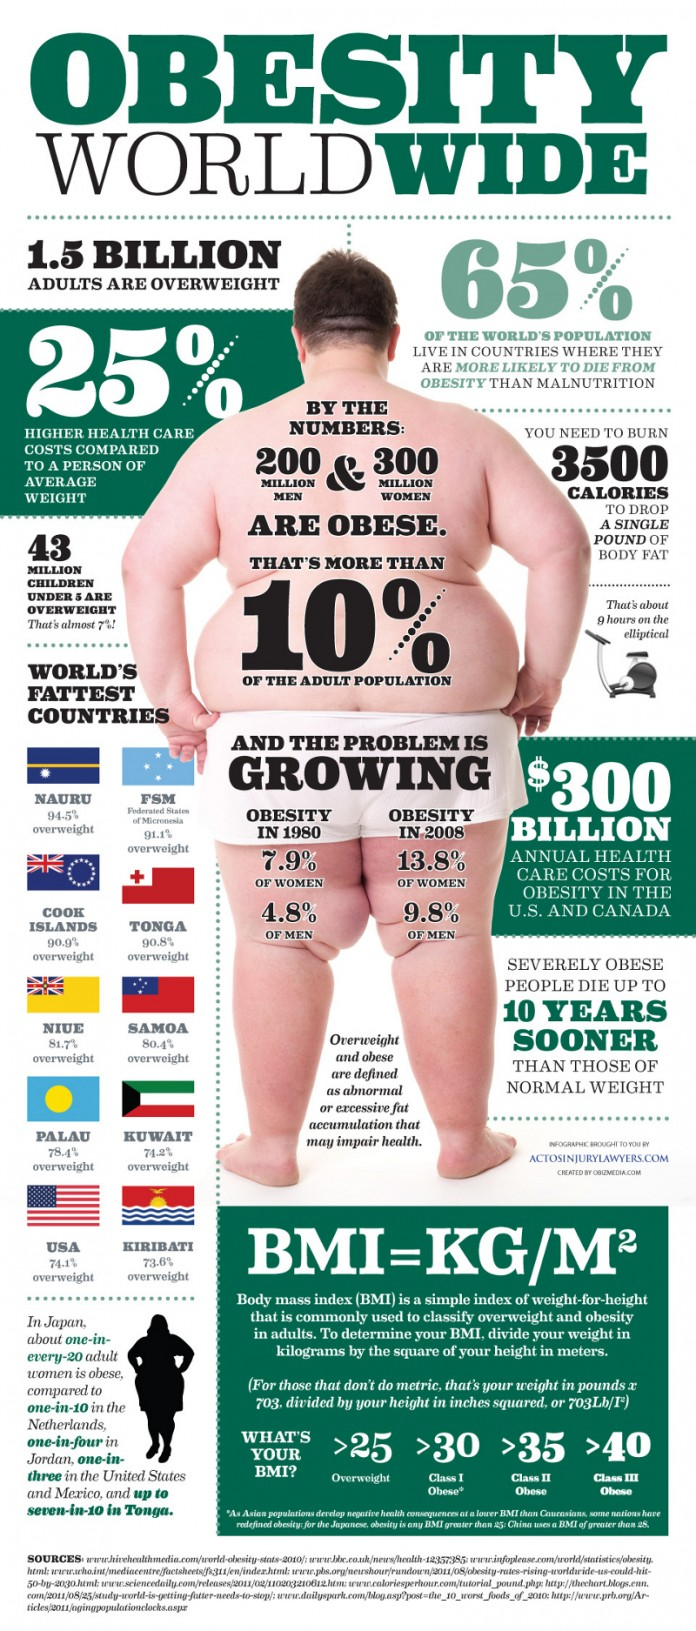 the treatment of obesity problems in american society